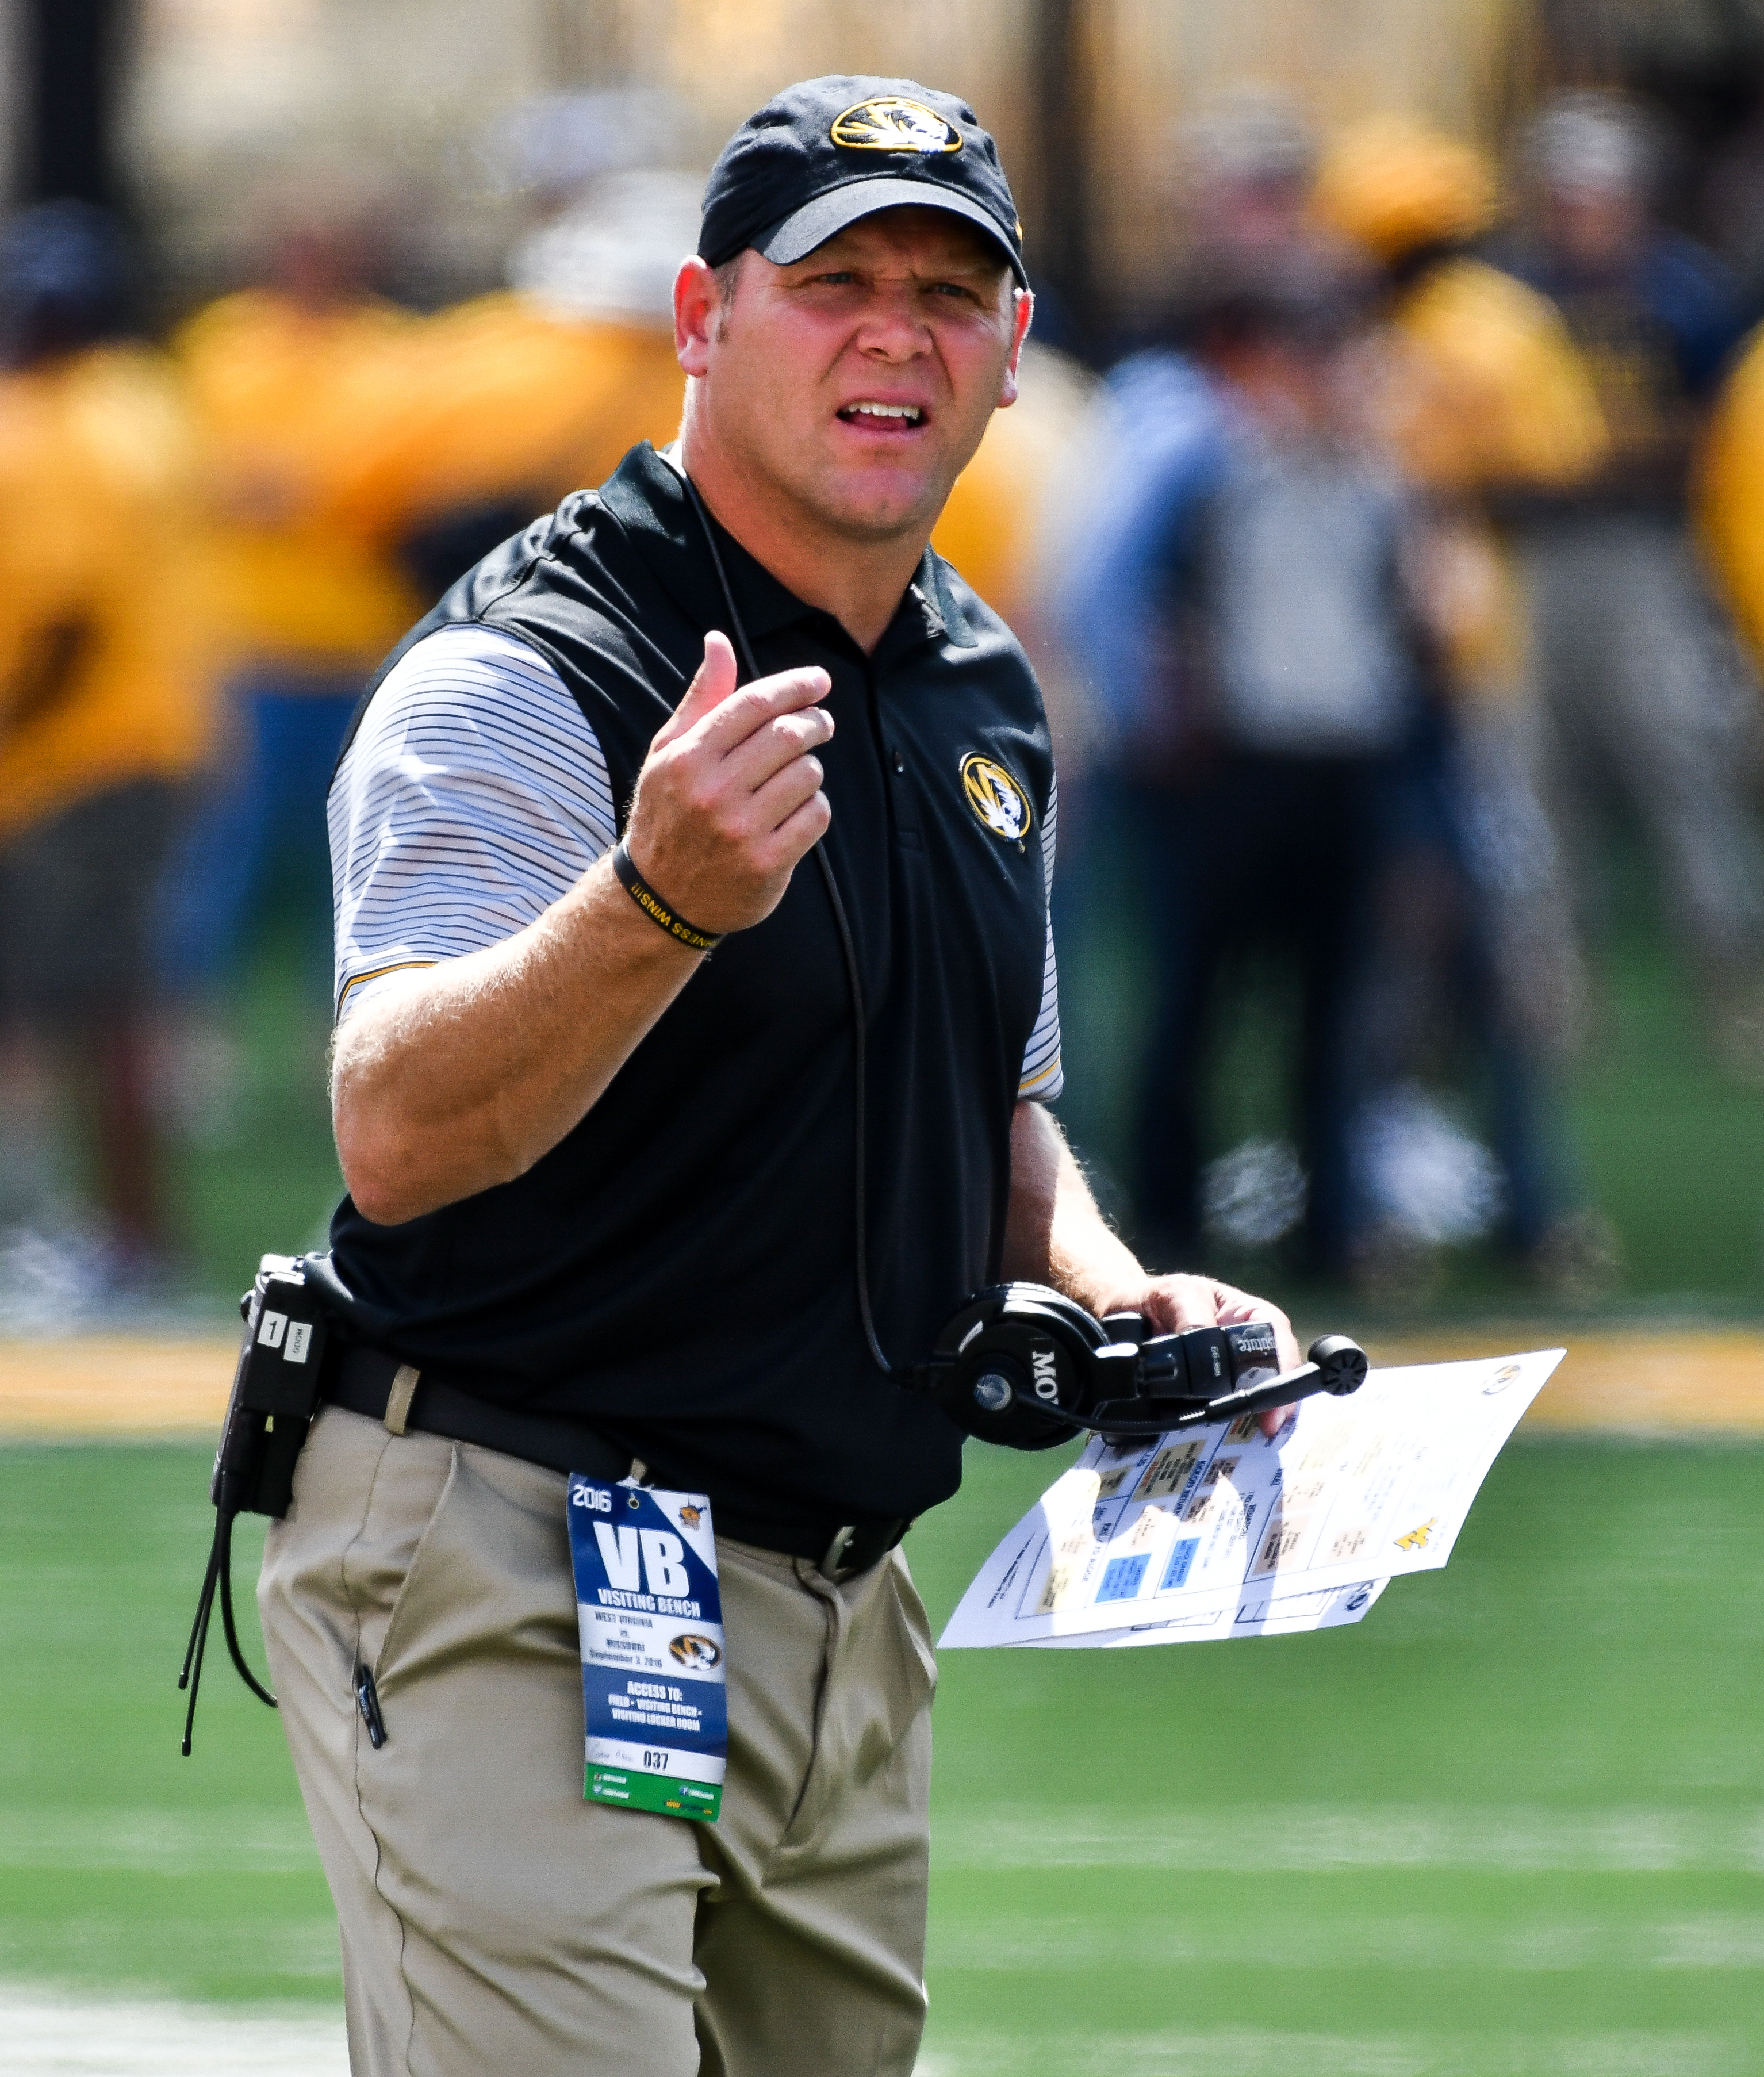 Missouri head coach Barry Odom motions to a referee during the first half of an NCAA college football game against West Virginia in Morgantown, W. Va., Saturday Sept. 3, 2016. (AP Photo/Tyler Evert)